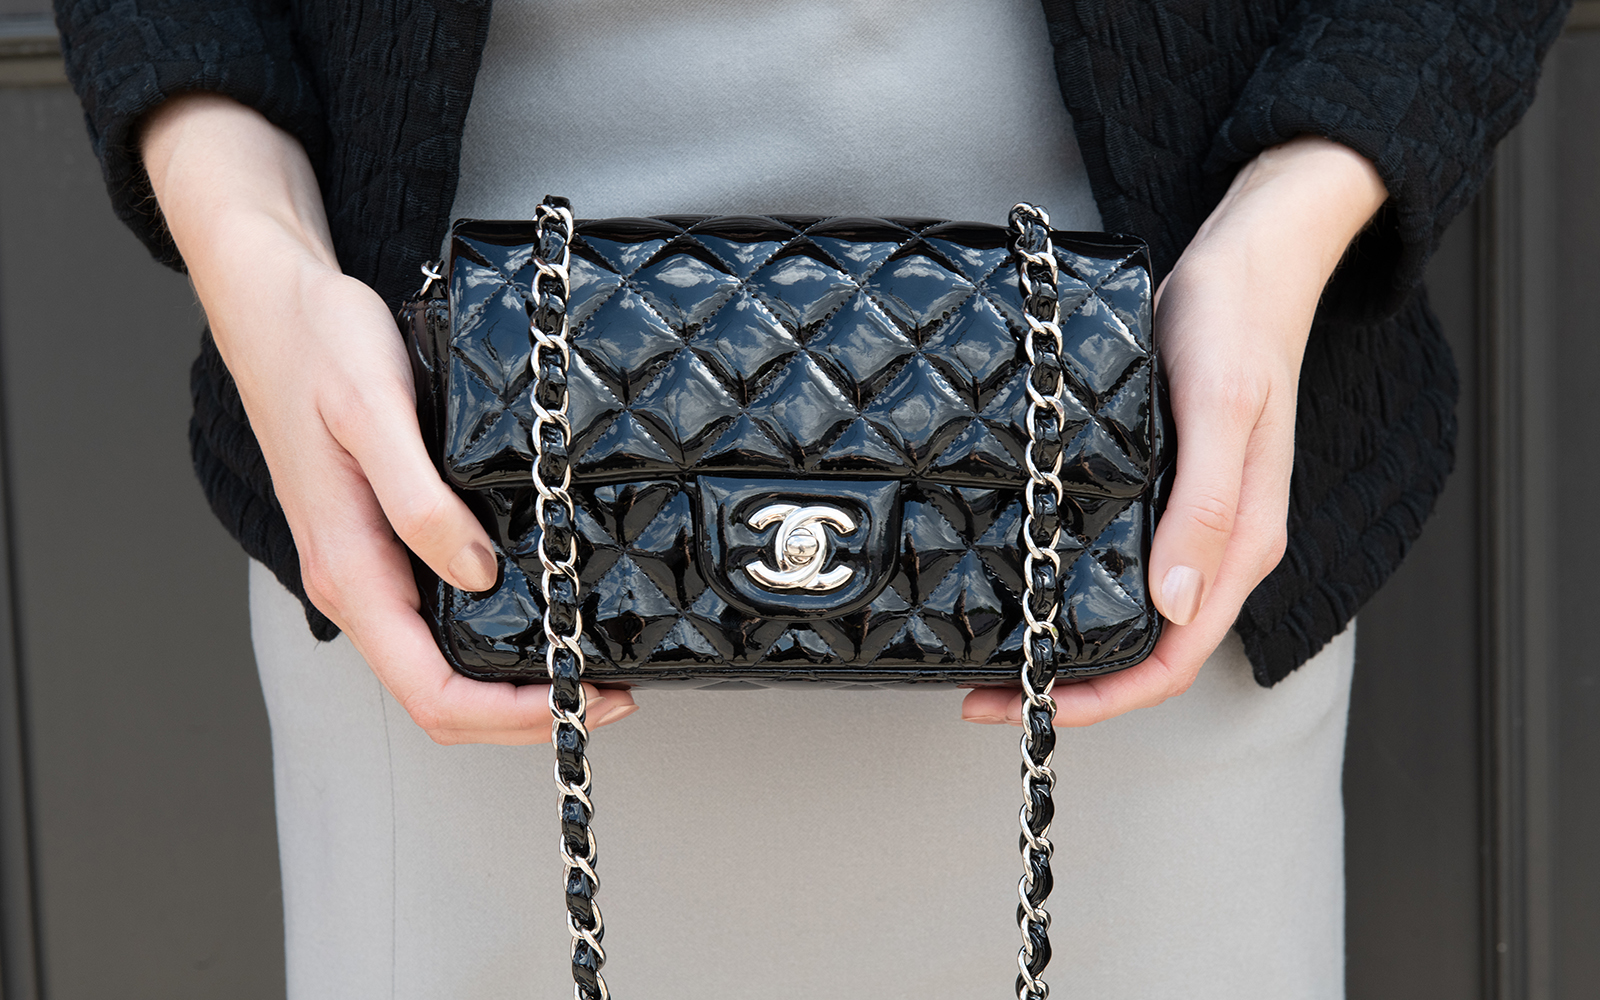 Chanel handbag manufacturing in Italy